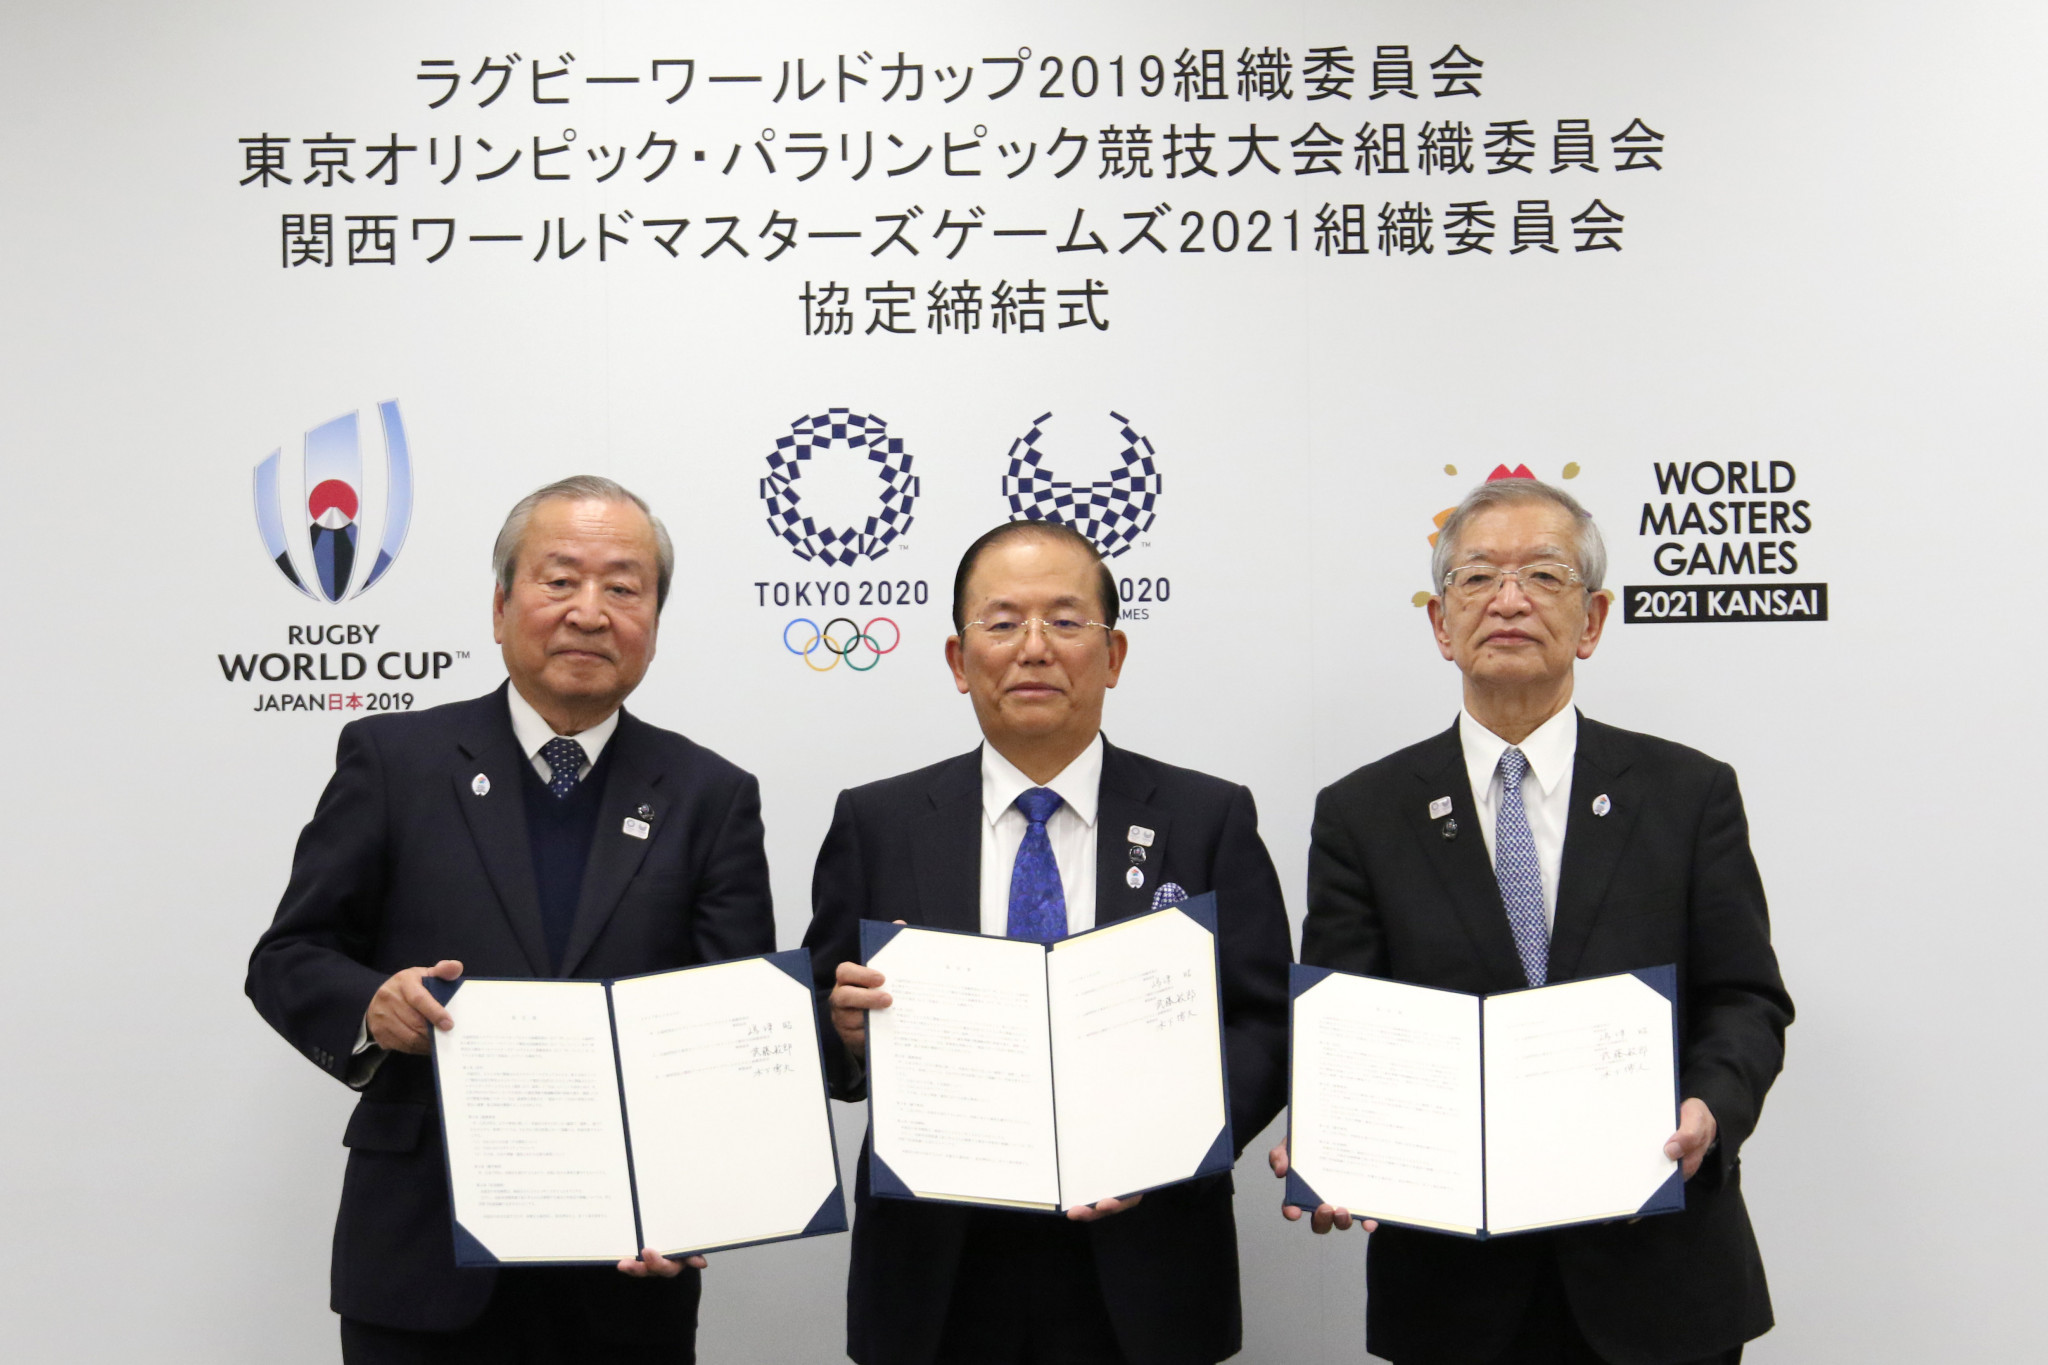 Tokyo 2020 enter partnership agreement with 2019 Rugby World Cup and 2021 World Masters Games